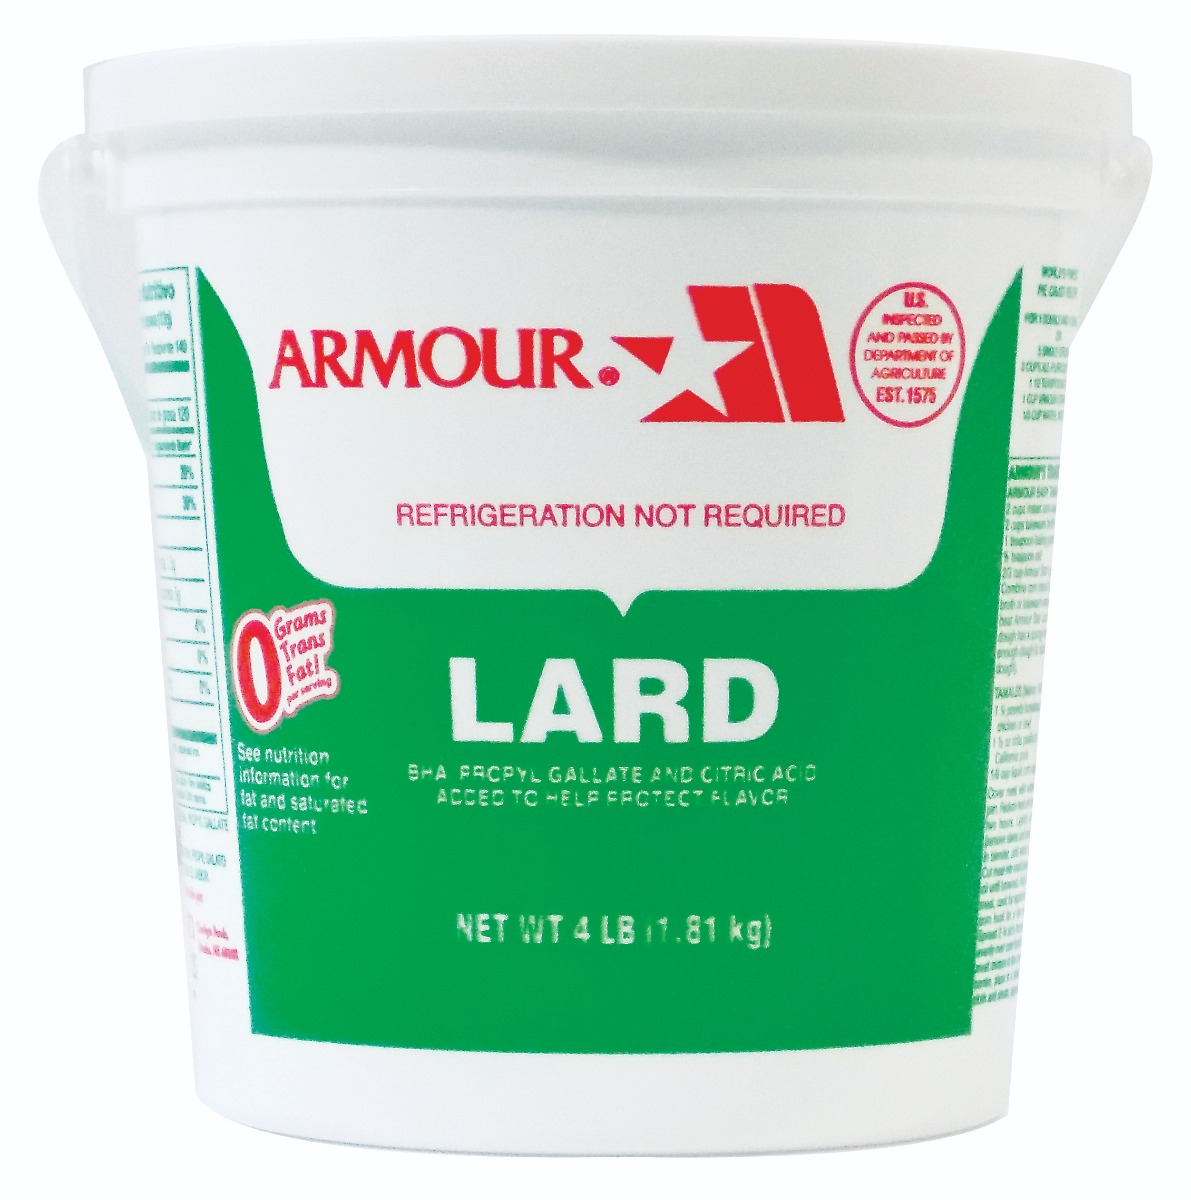 ARMOUR: Lard in Pail, 4 lb